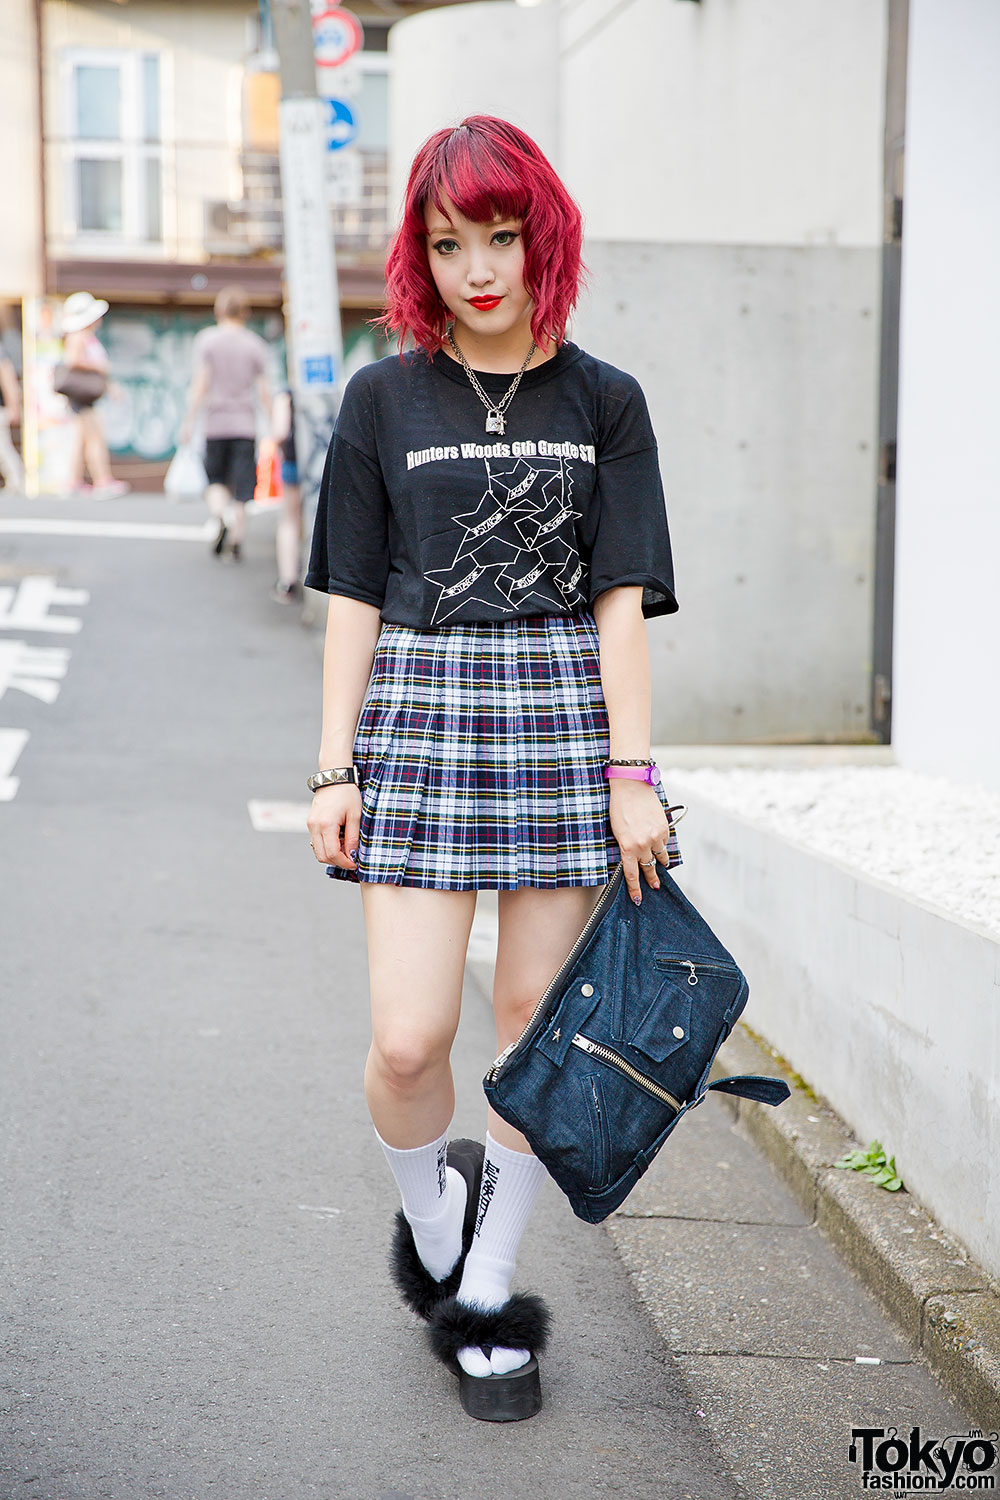 Harajuku Fashion Blogger W Fuchsia Hair American Apparel Plaid Skirt Justin Davis